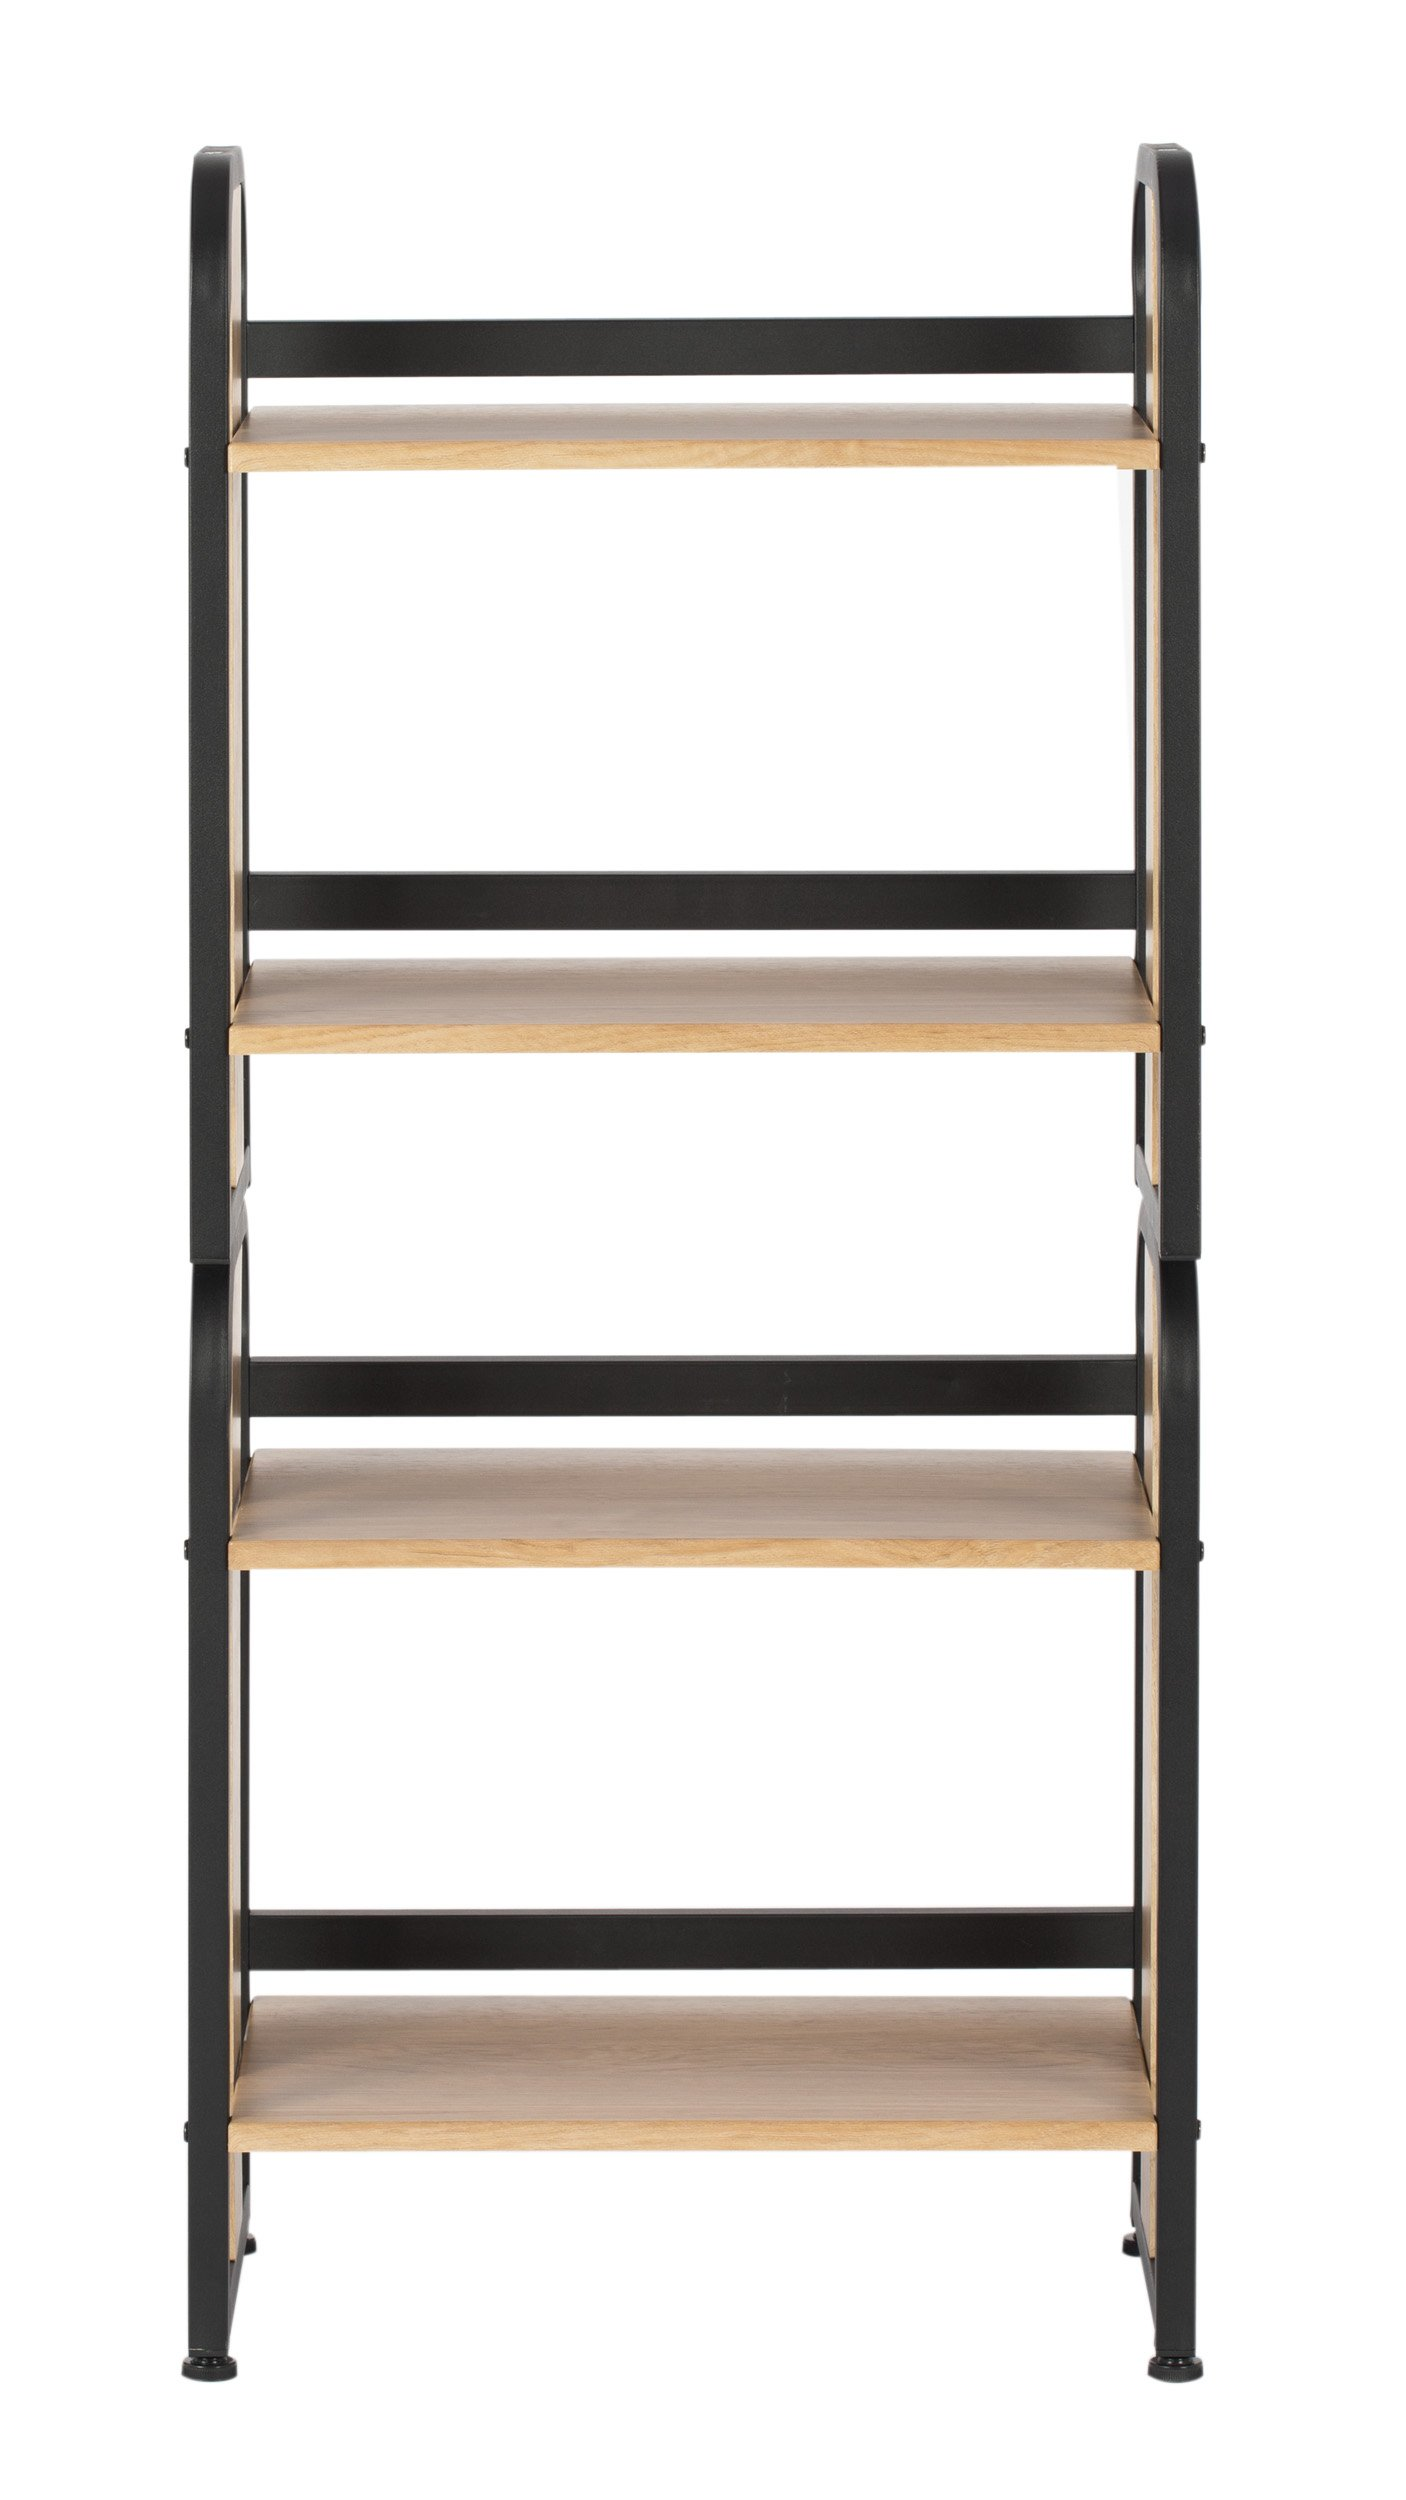 Calico Designs 51249 Modern Ashwood Stackable Bookshelf, Graphite Ashwood by Calico Designs (Image #2)